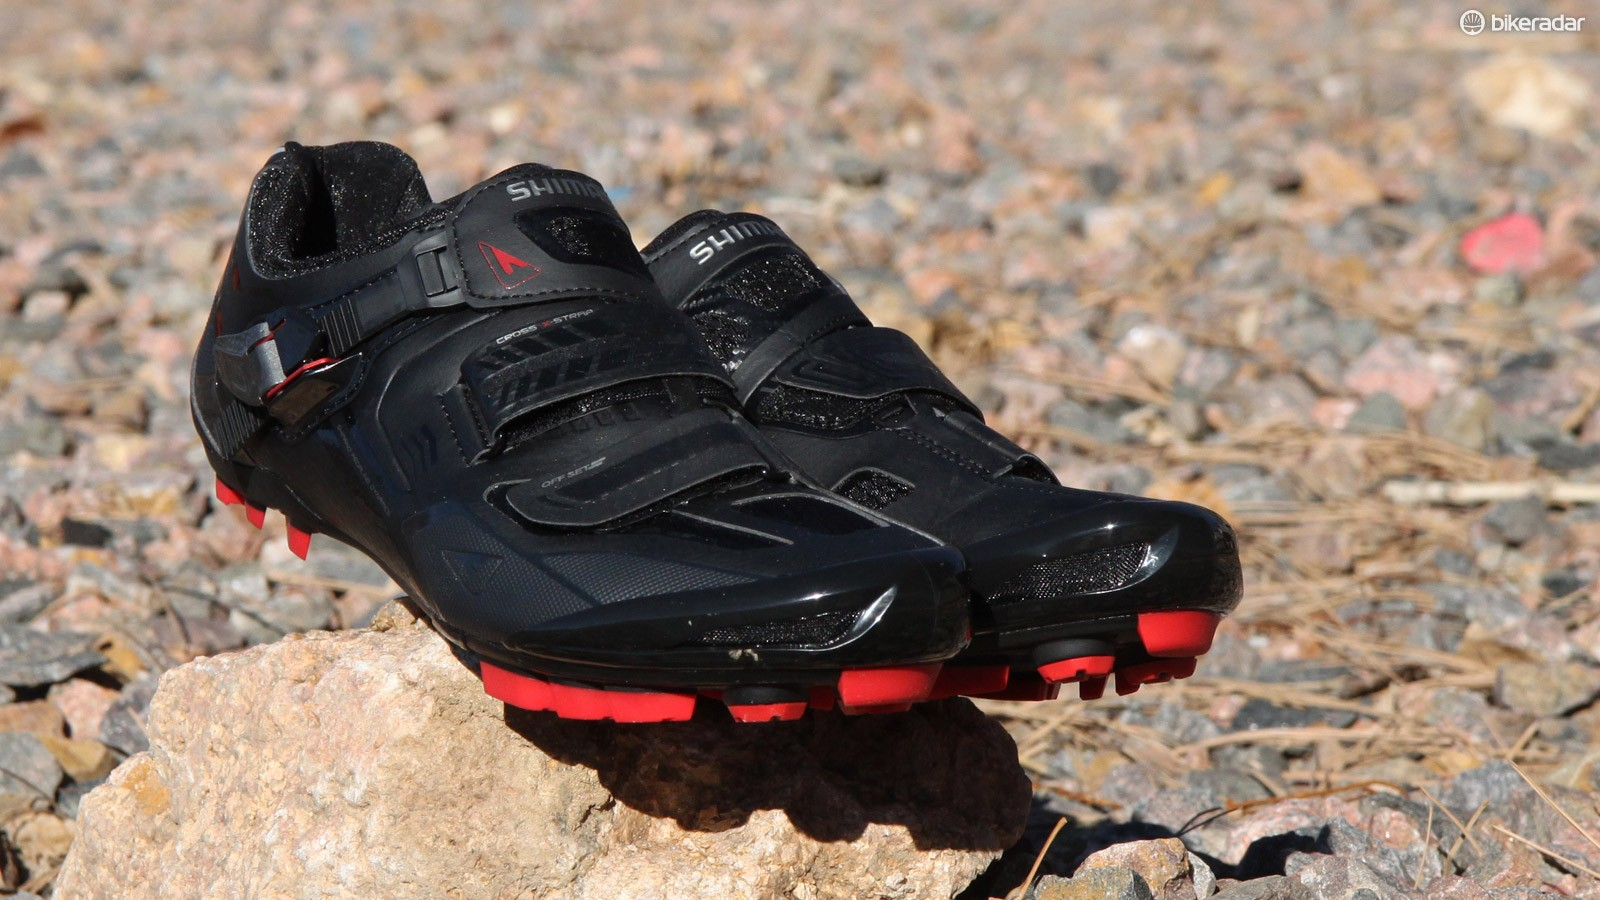 The Shimano SH-XC70 shoes lack the heat moldable uppers of the top-end XC90 model but, provided your feet are fairly typically shaped, these should work well